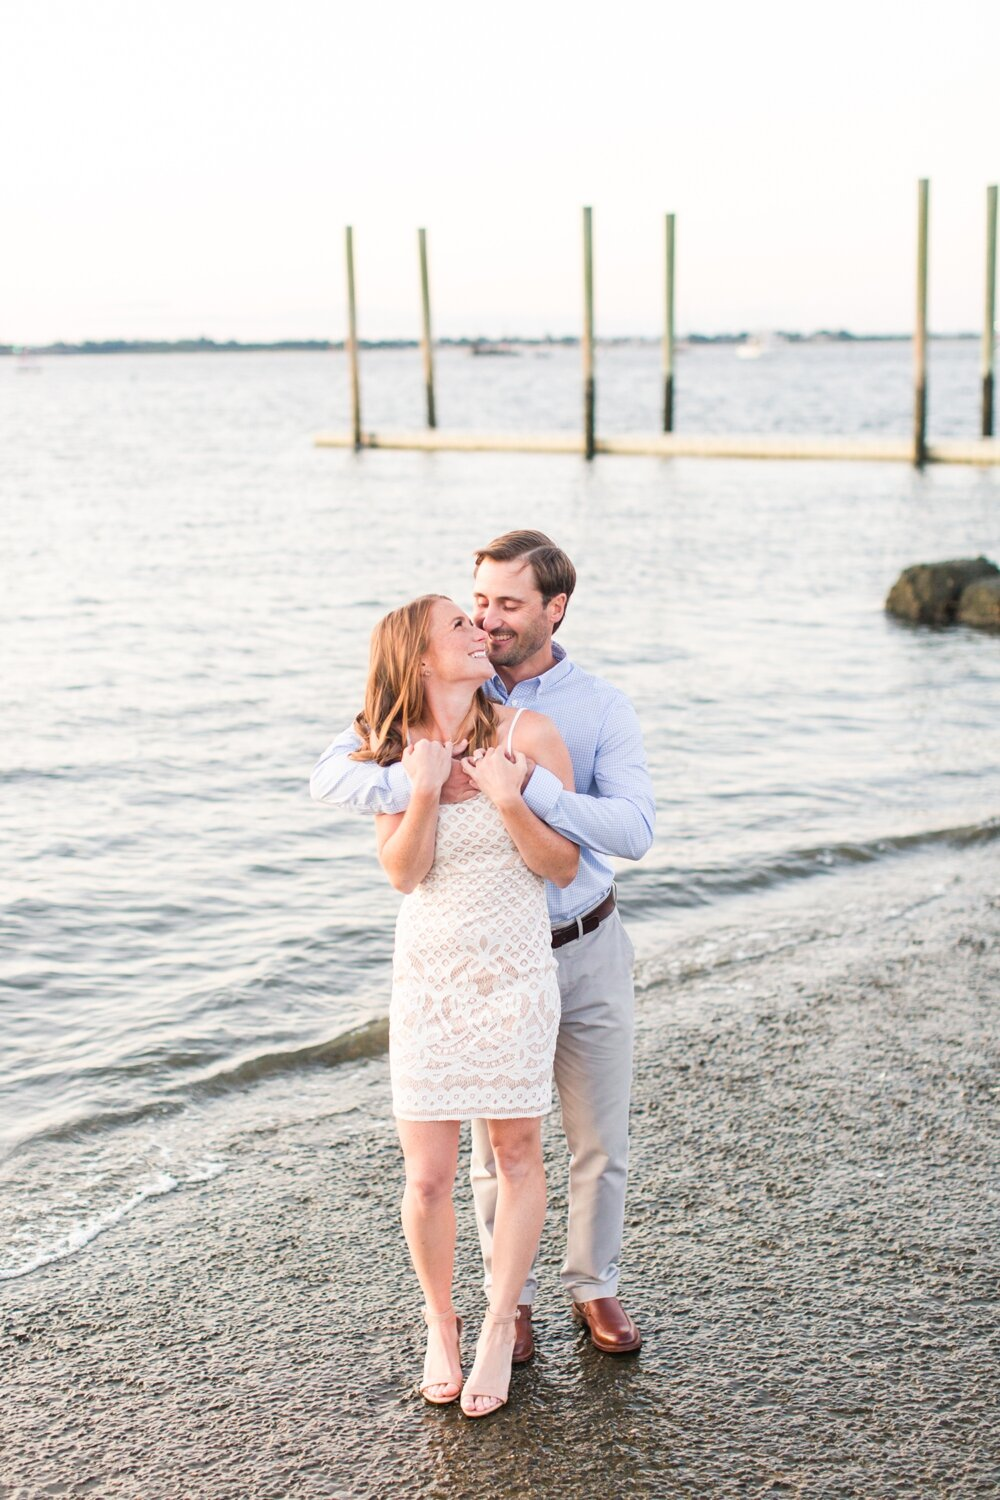 theodore-roosevelt-memorial-park-engagement-session-oyster-bay-long-island-new-york-wedding-photographer-shaina-lee-photography-photo